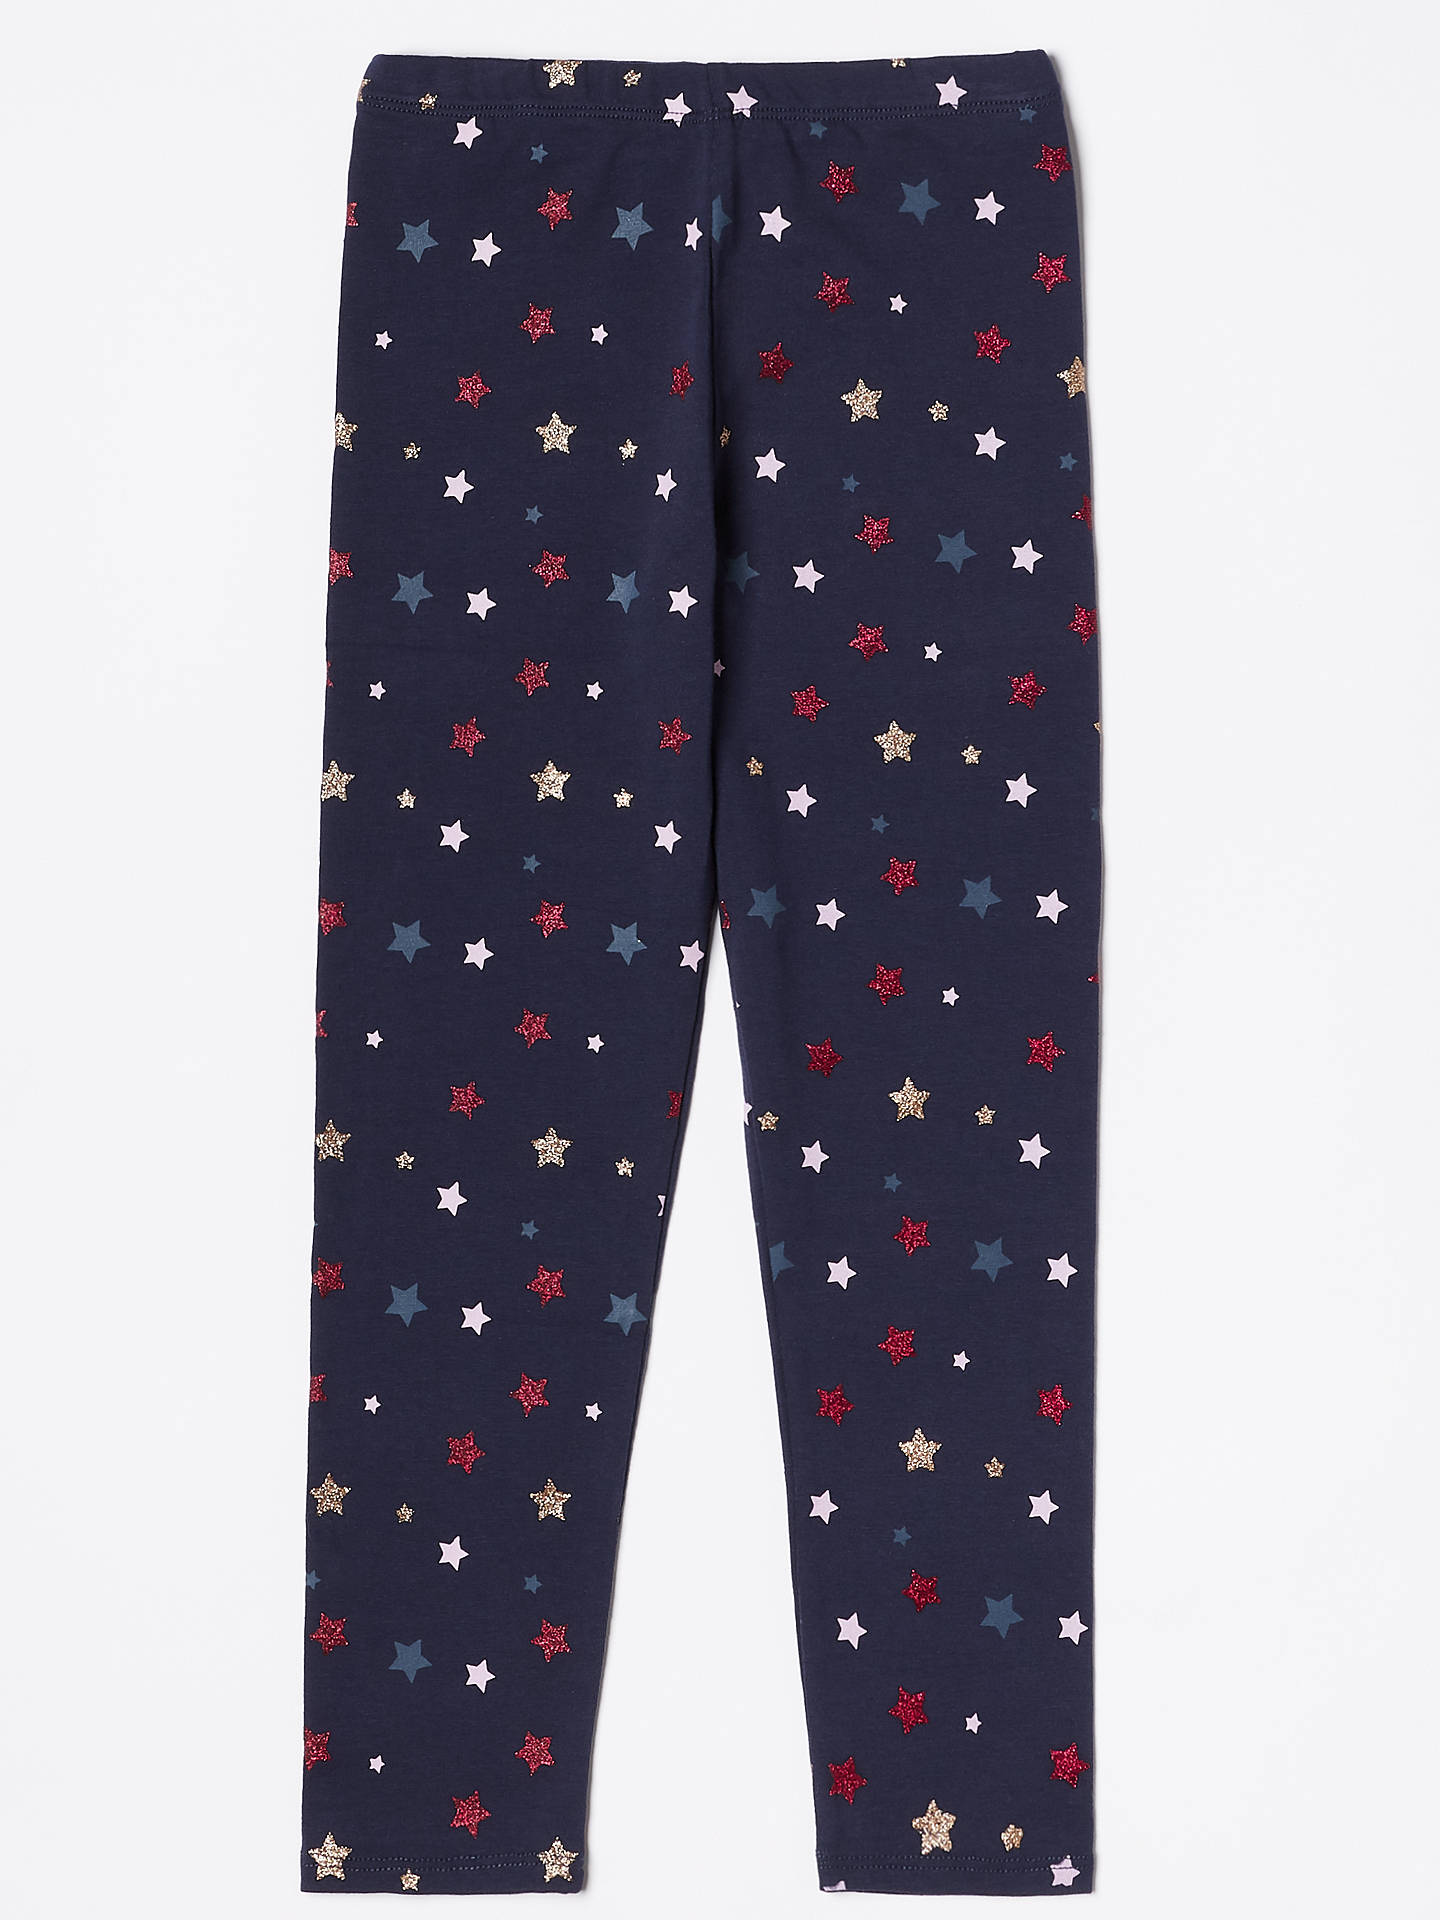 BuyJohn Lewis & Partners Girls' Star Print Leggings, Navy, 3 years Online at johnlewis.com